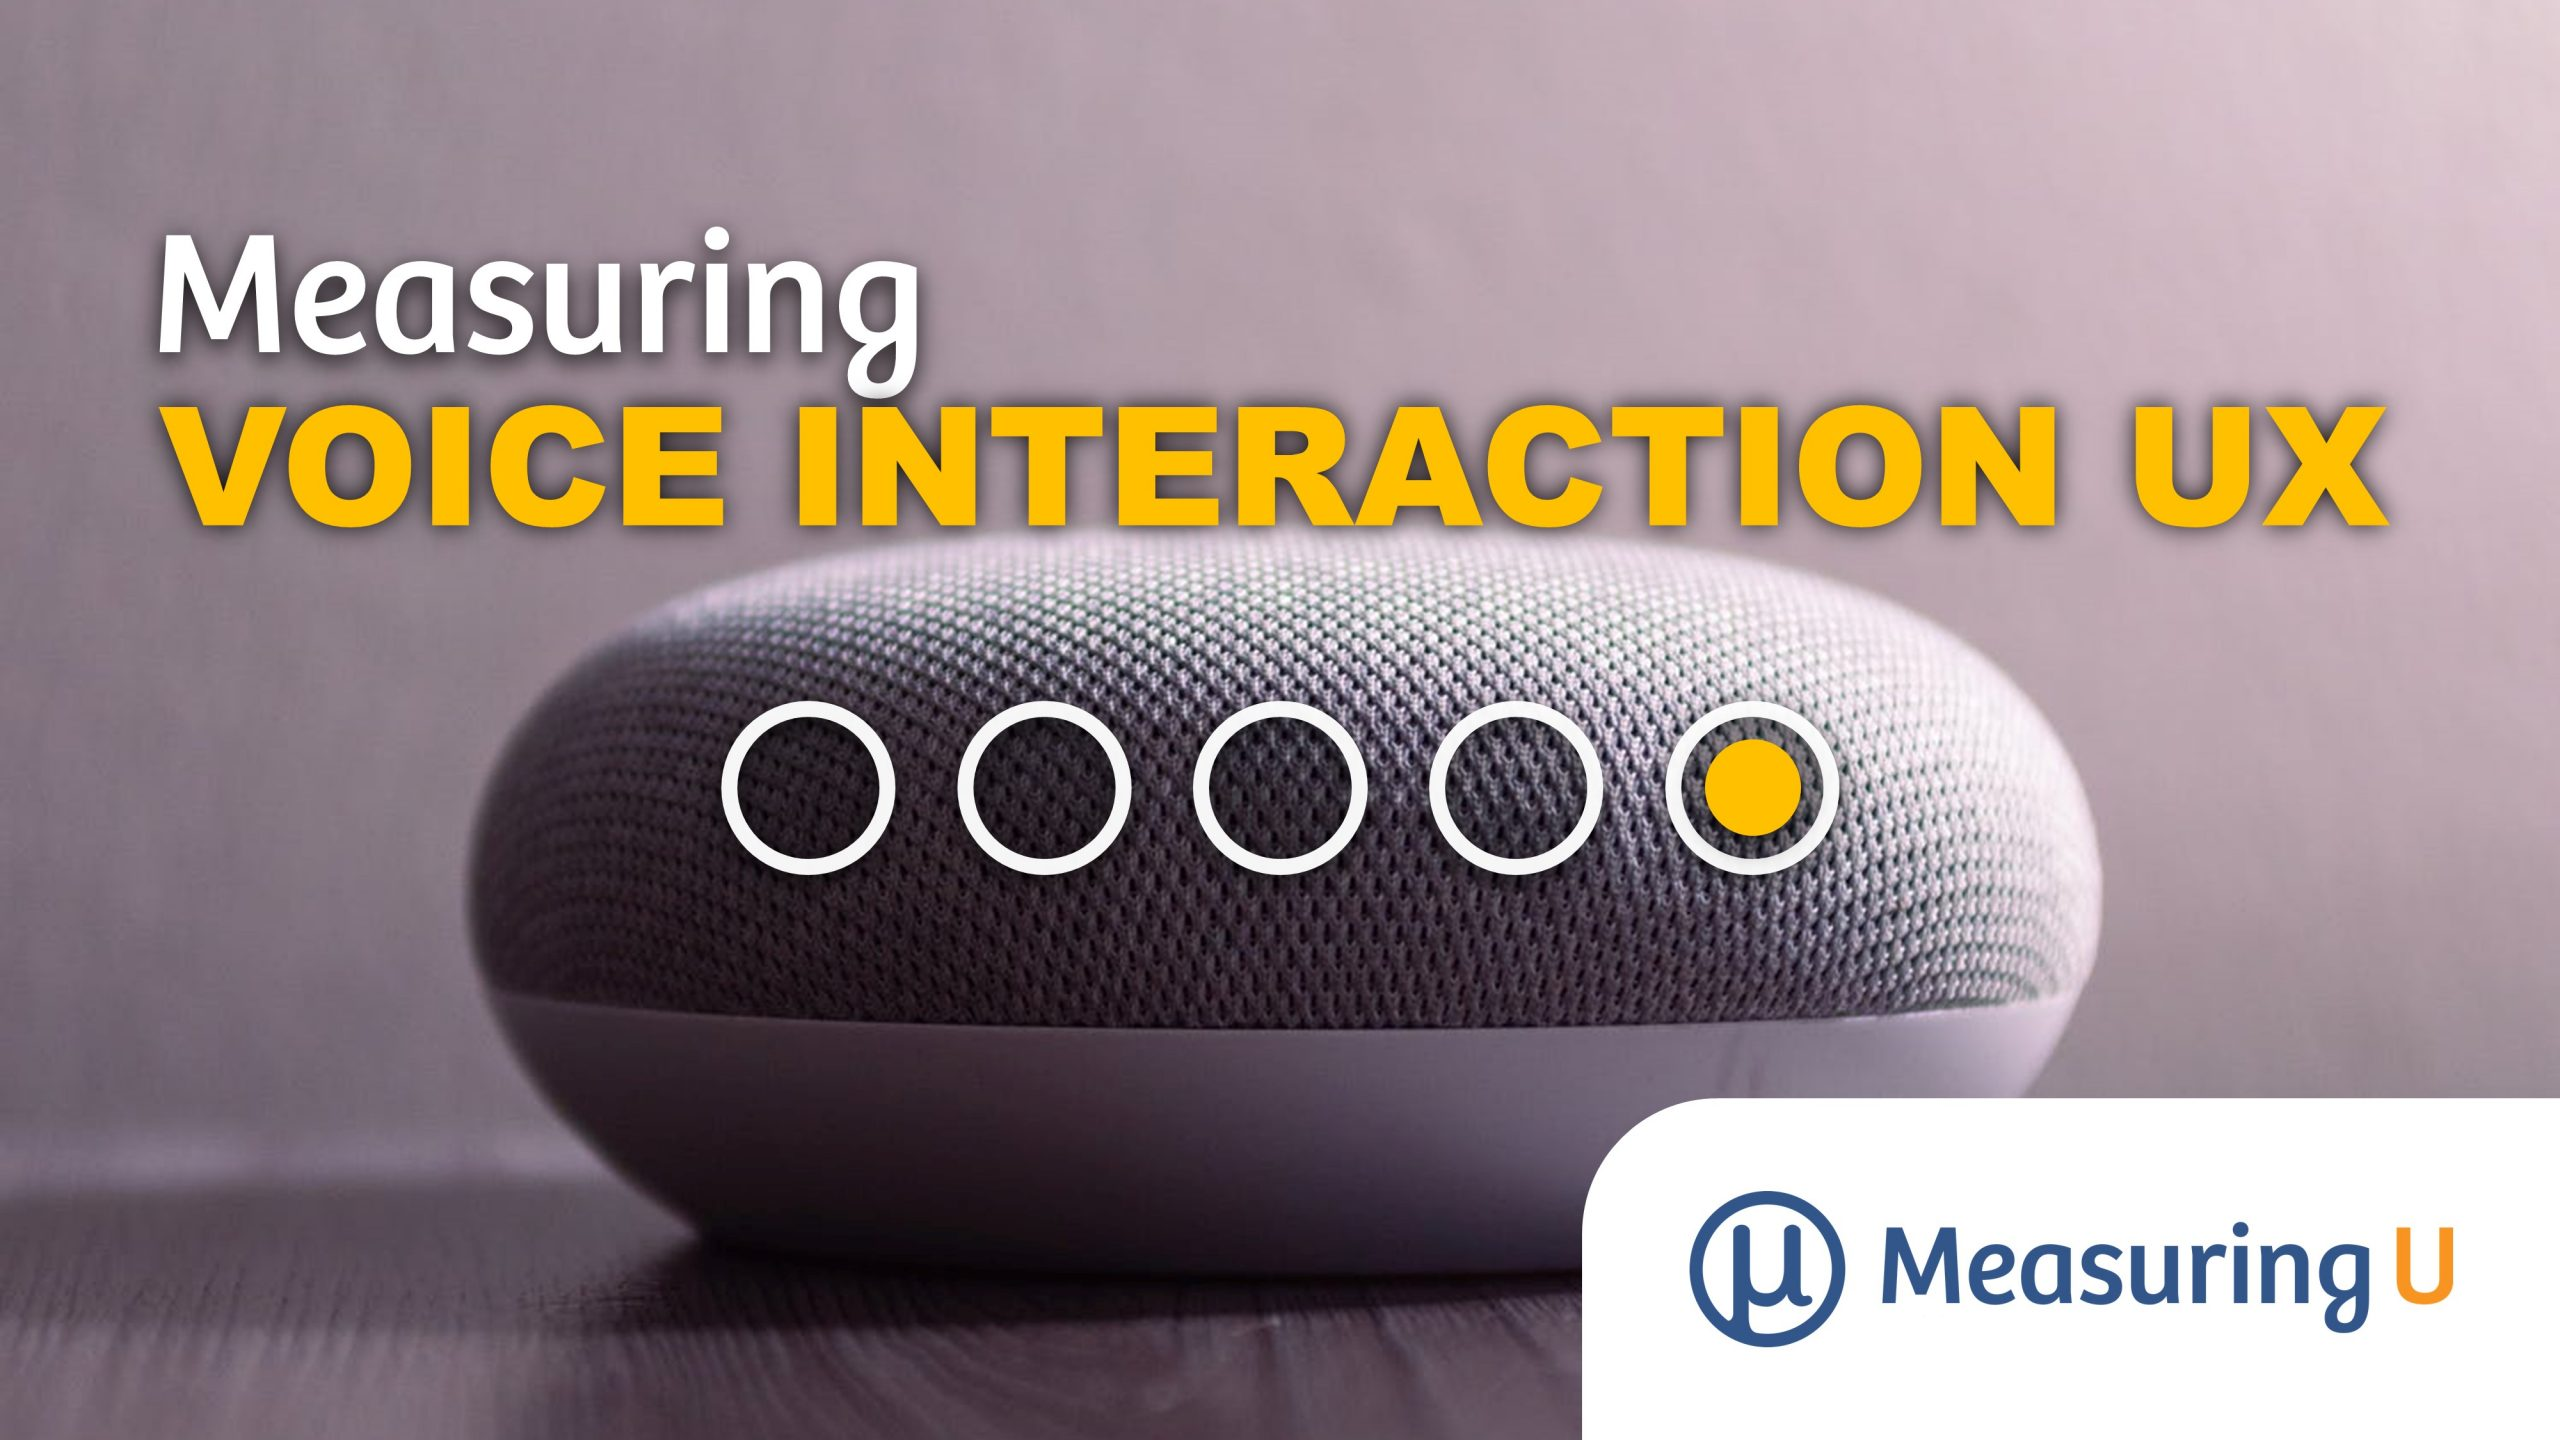 Three Questionnaires for Measuring Voice Interaction Experiences